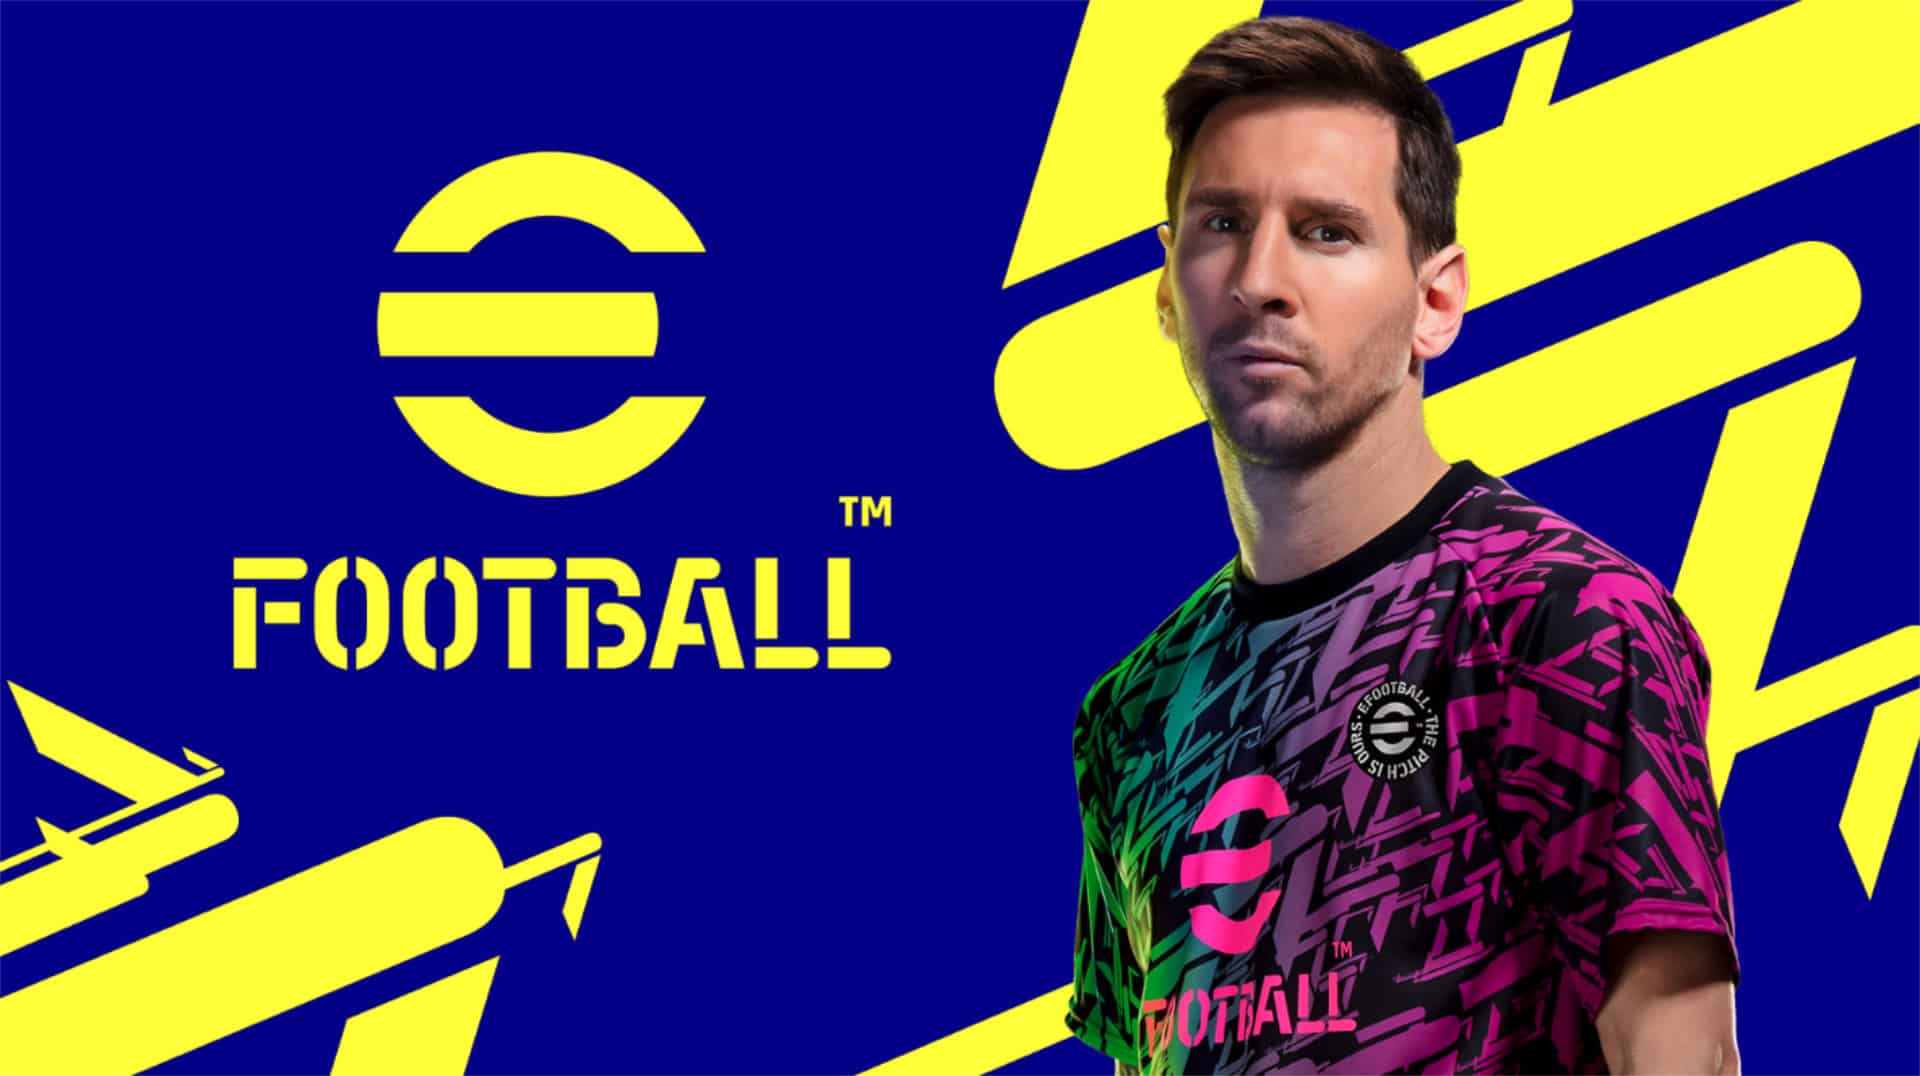 PES eFootball Free-to-play